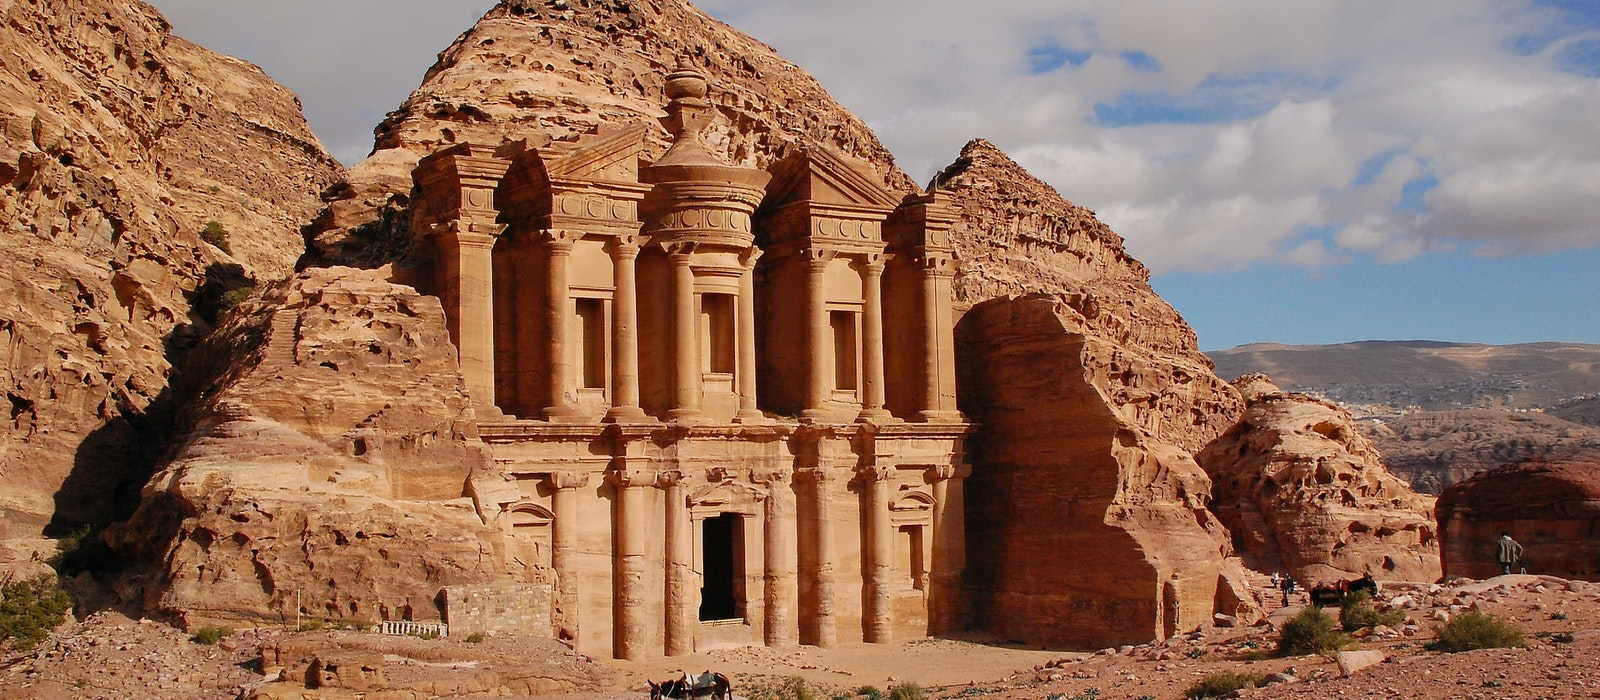 The Petra Monastery is one of the sites along the route of the Jordan Trail.